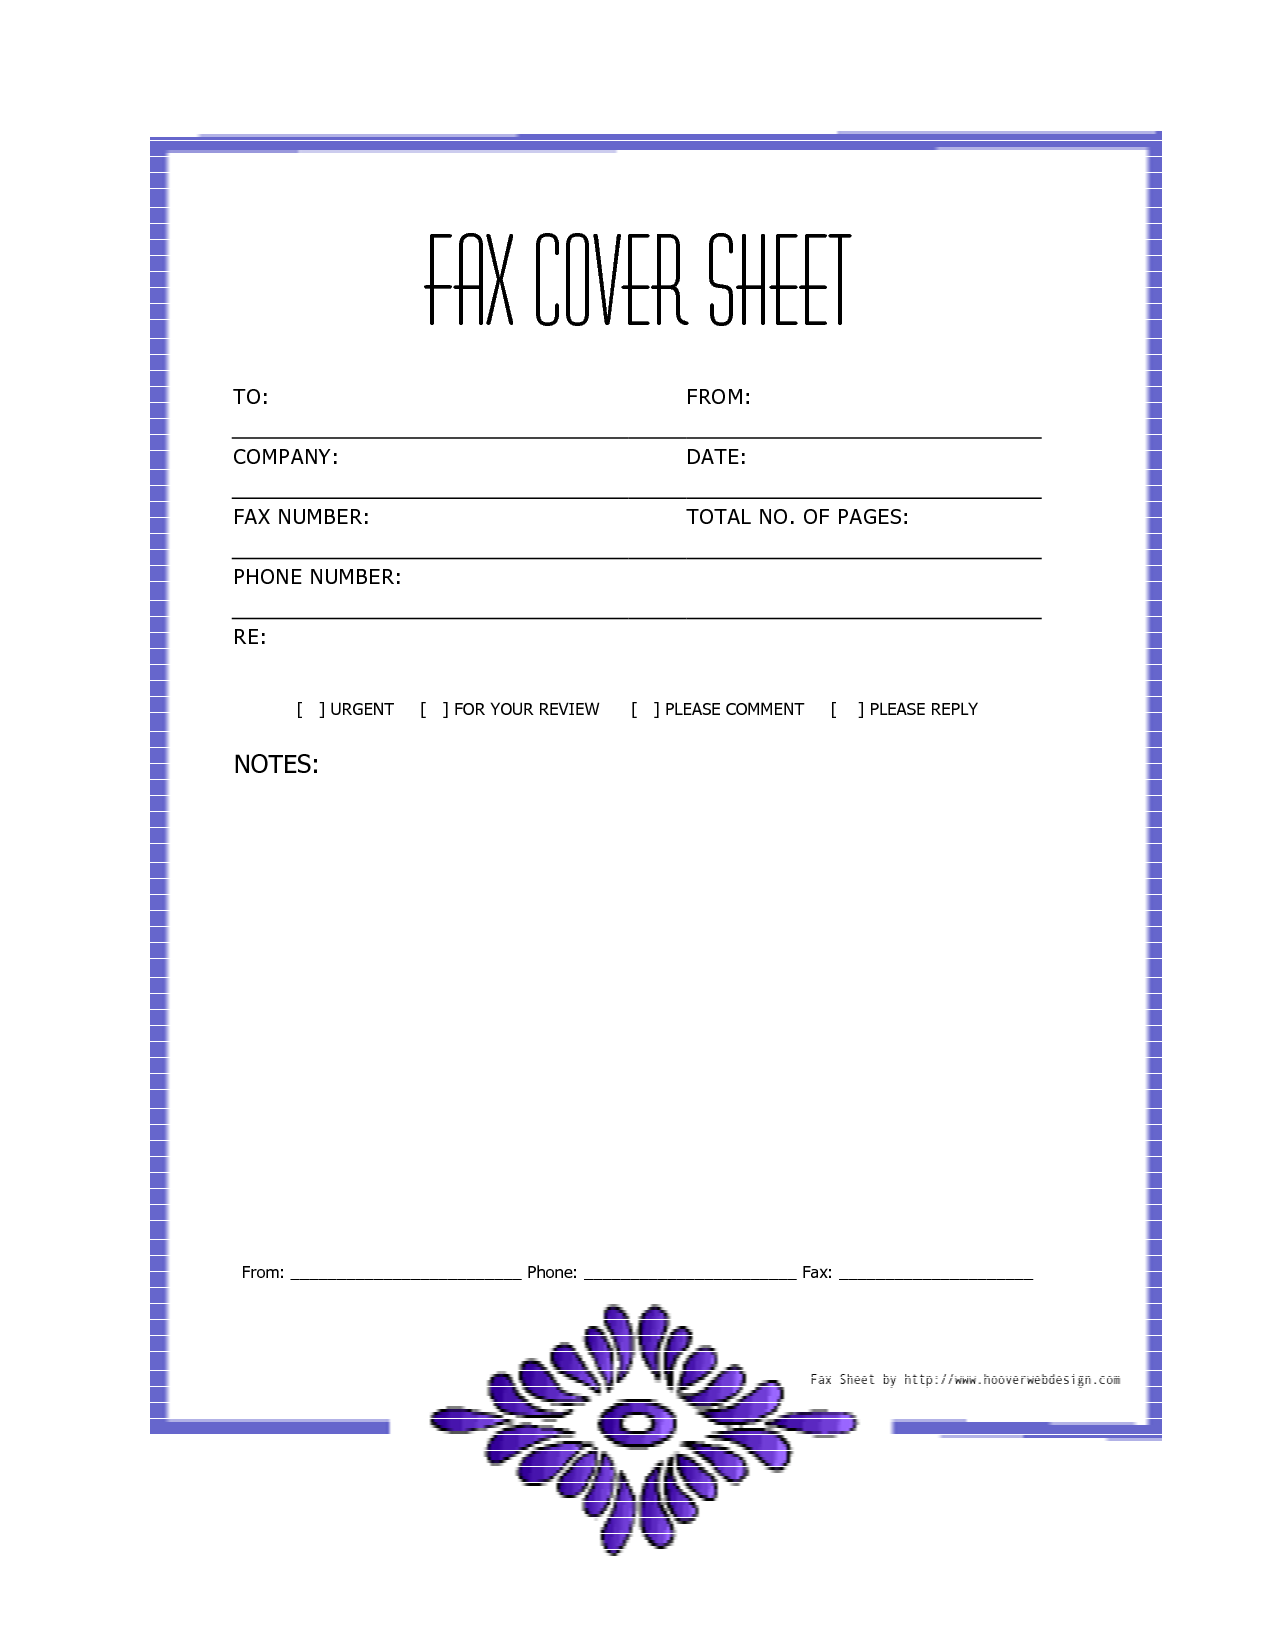 fax cover sheet example httpcalendarprintablehubcomfax cover